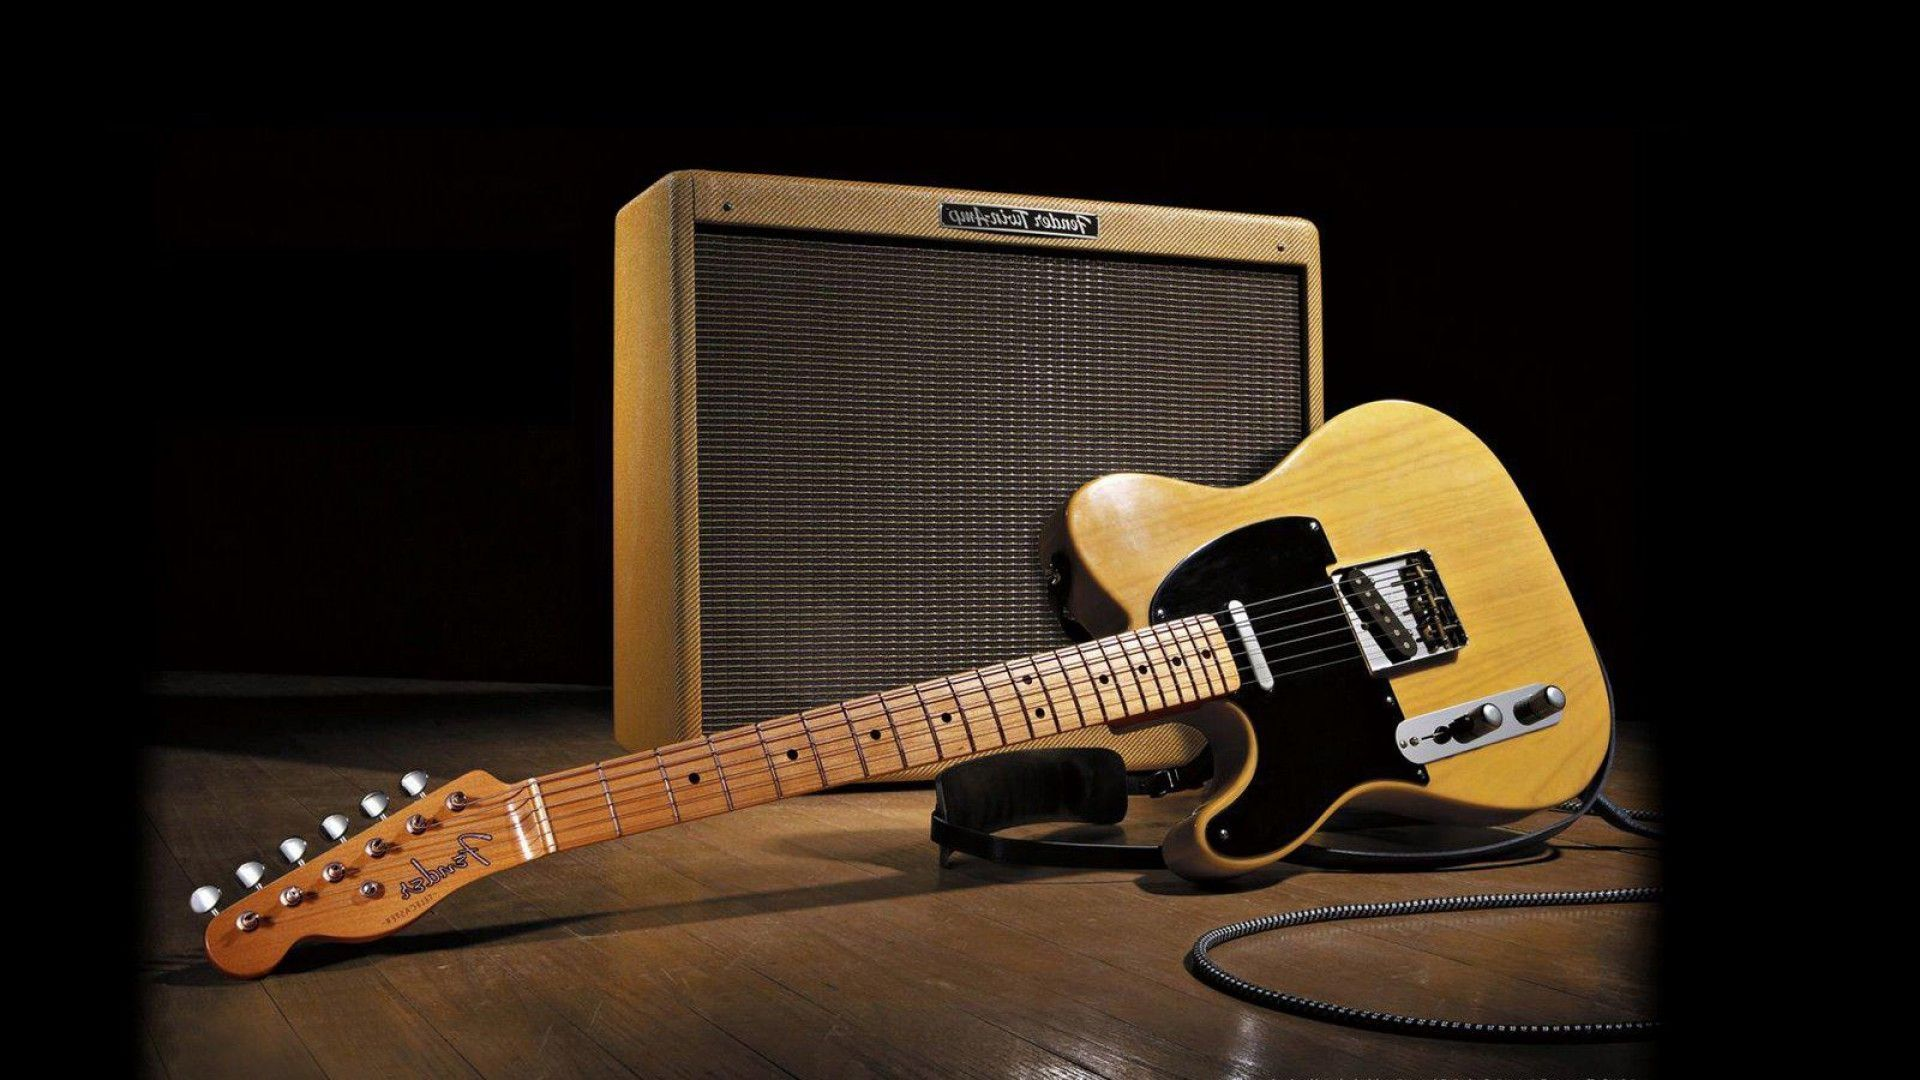 51 Fender Guitar Hd Wallpapers Wallpaperboat